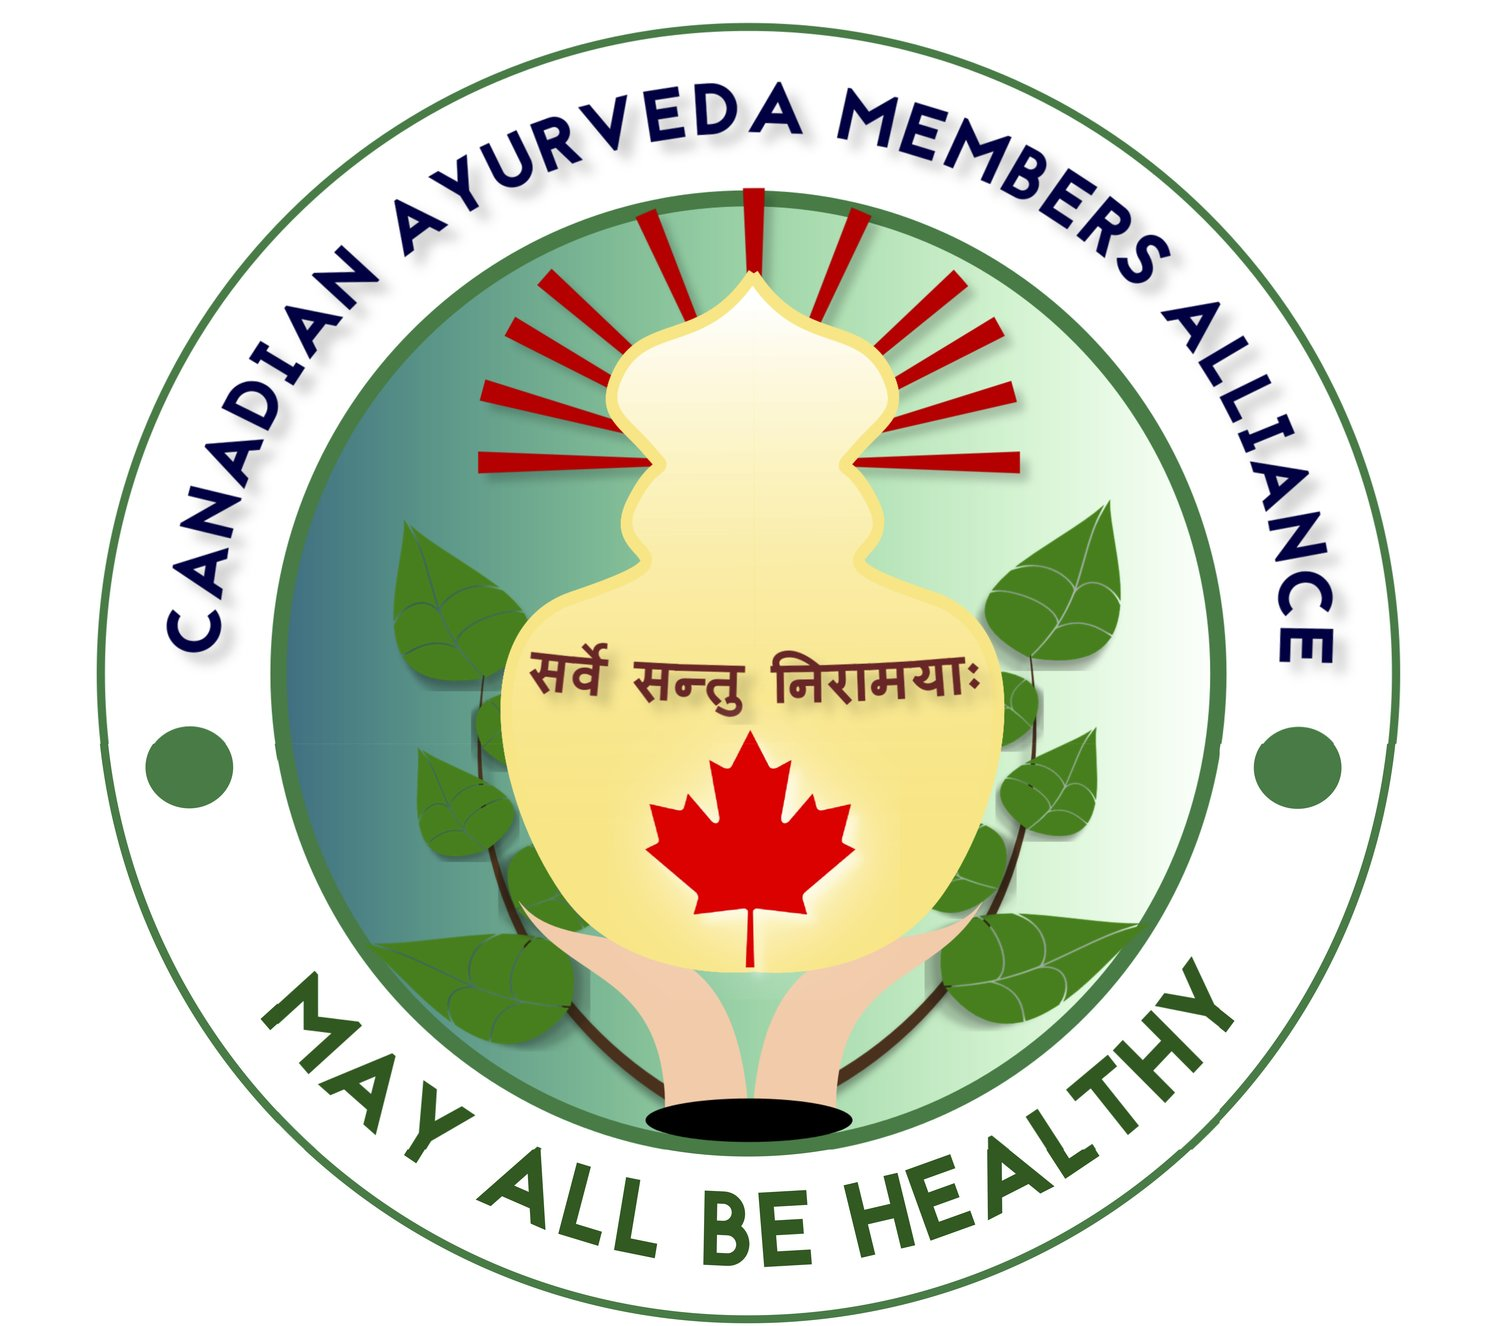 Canadian Ayurvedic Members Alliance